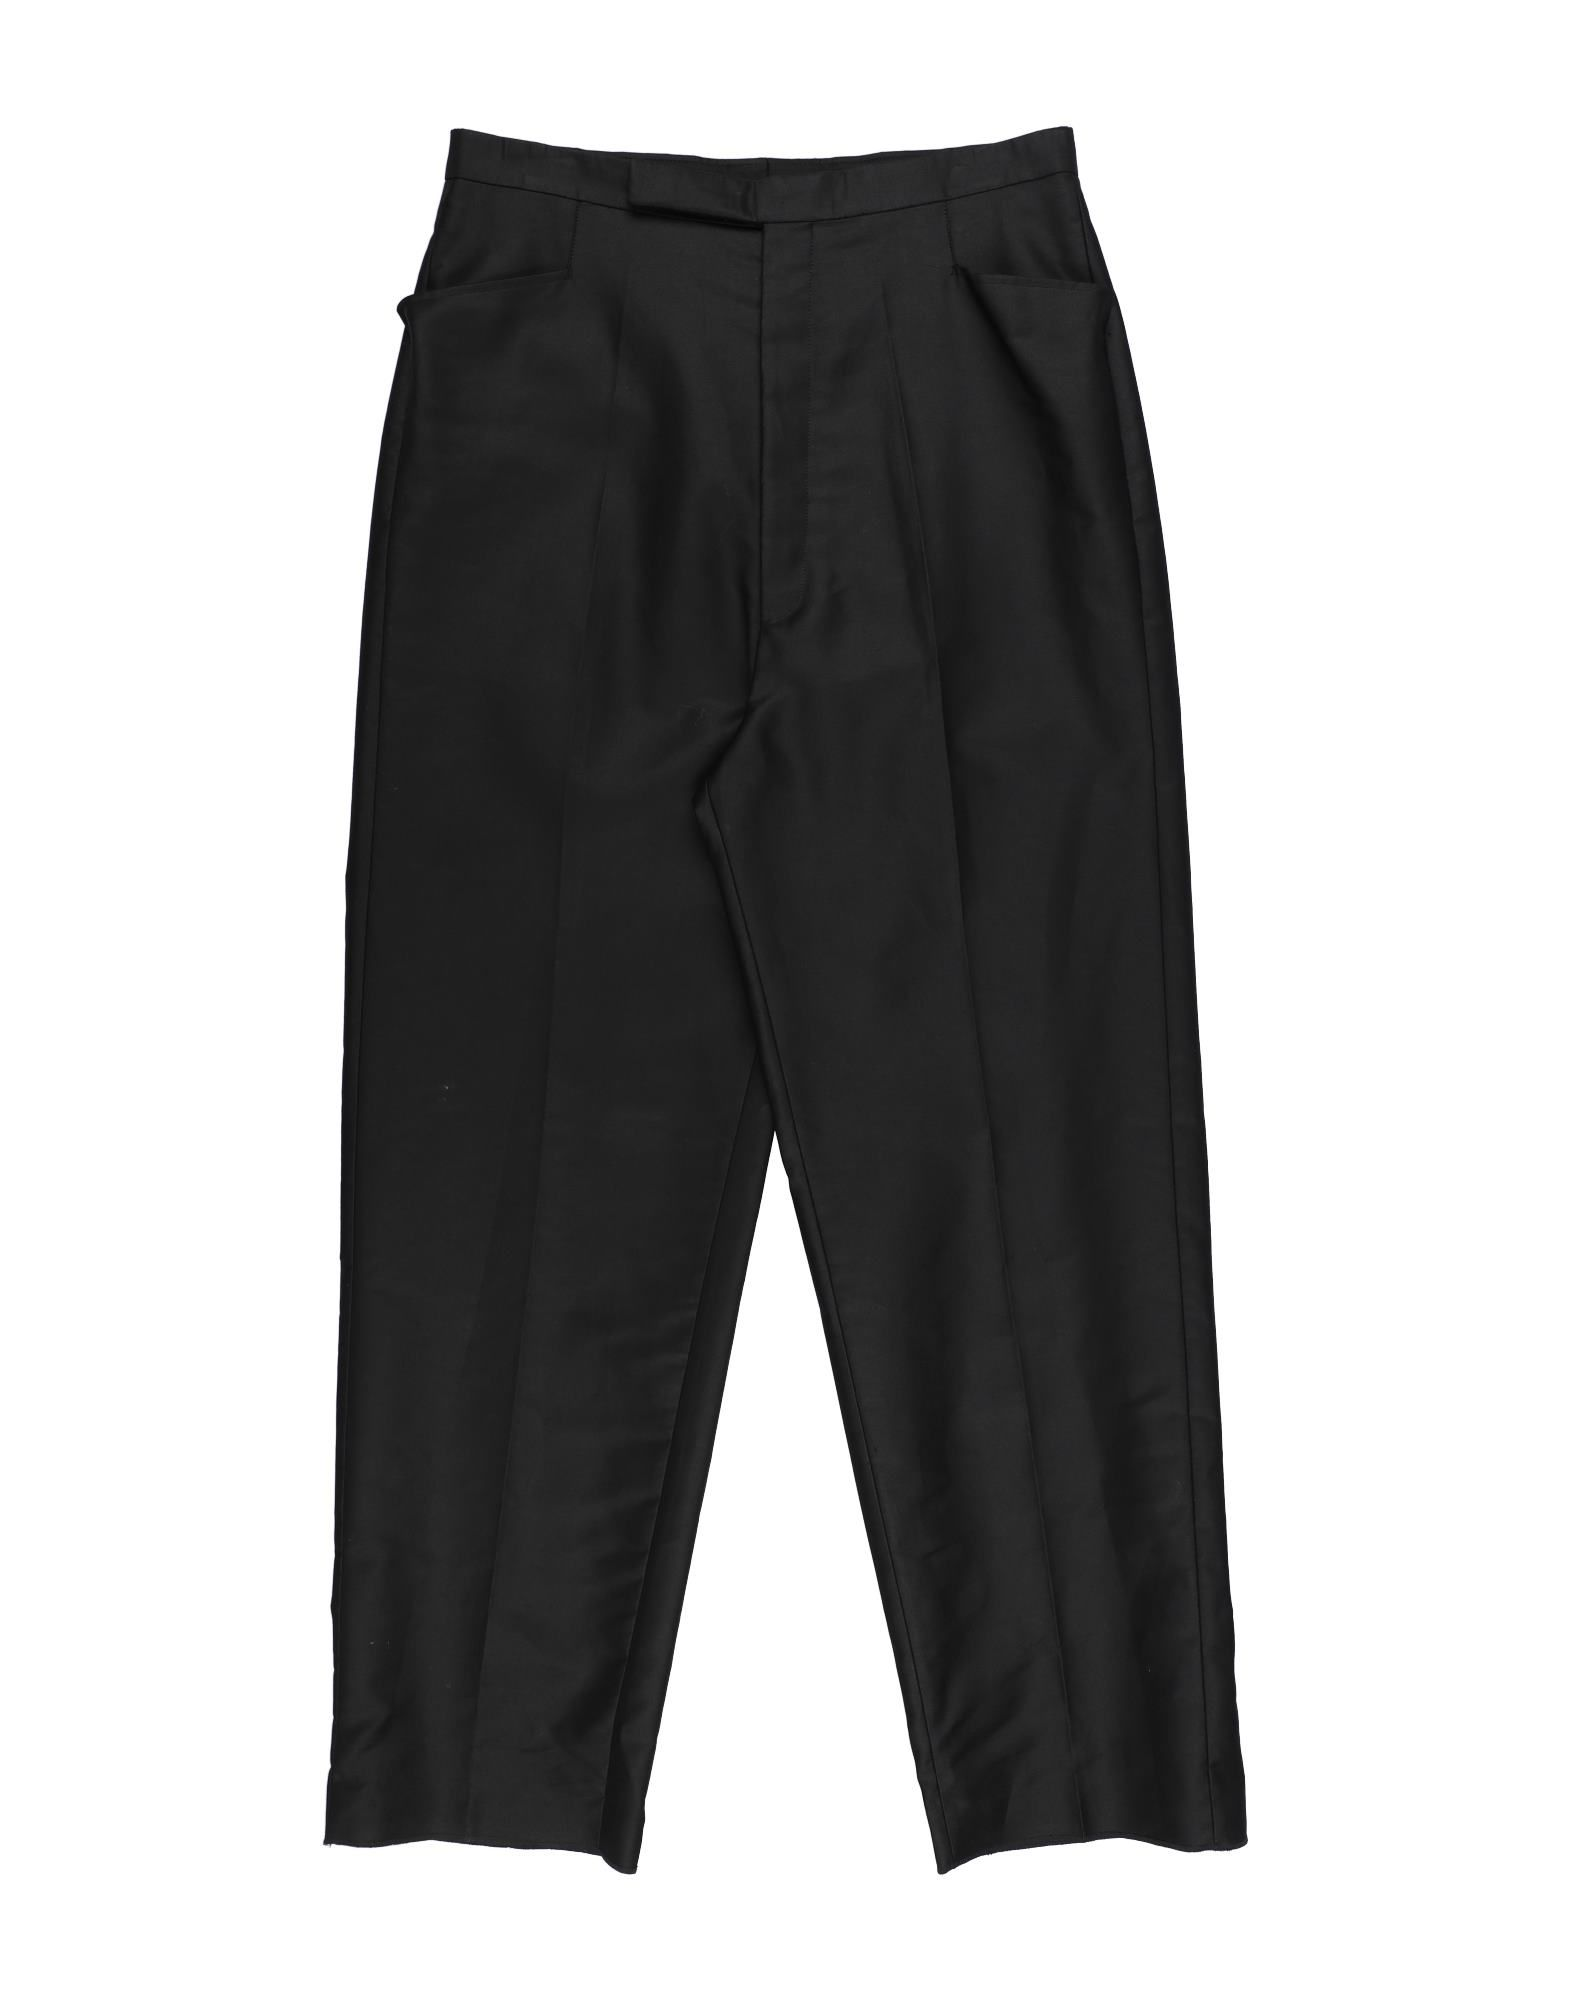 RICK OWENS Casual pants. plain weave, basic solid color, no appliqués, high waisted, regular fit, tapered leg, button closing, multipockets, large sized. 100% Cotton